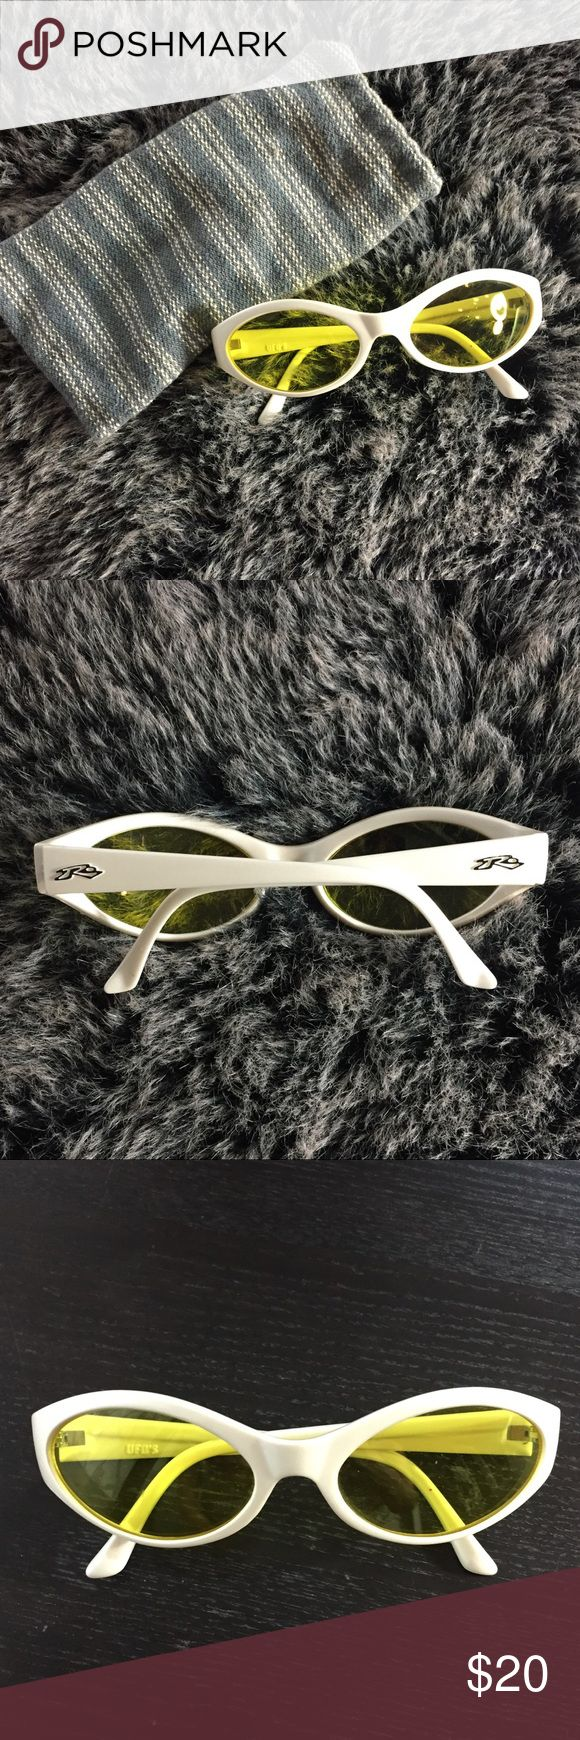 Rusty Surf Supply Yellow Lens Glasses/ Gaming lens Rusty Surf Supply, Yellow Lens Sunglasses ⭐️EUC - Like New! ⭐️ Perfect glasses for gamers or social media junkies! 🎮 Yellow lenses are also known to reduce eye fatigue and strain caused by the blue light emitted by screens. ❄️ These glasses were also a lifesaver when snowboarding at night because they help lighten trails and tone down the glare from the bright lights of snow resorts with icy conditions.  📦 Fast shipping! Bundle multiple…